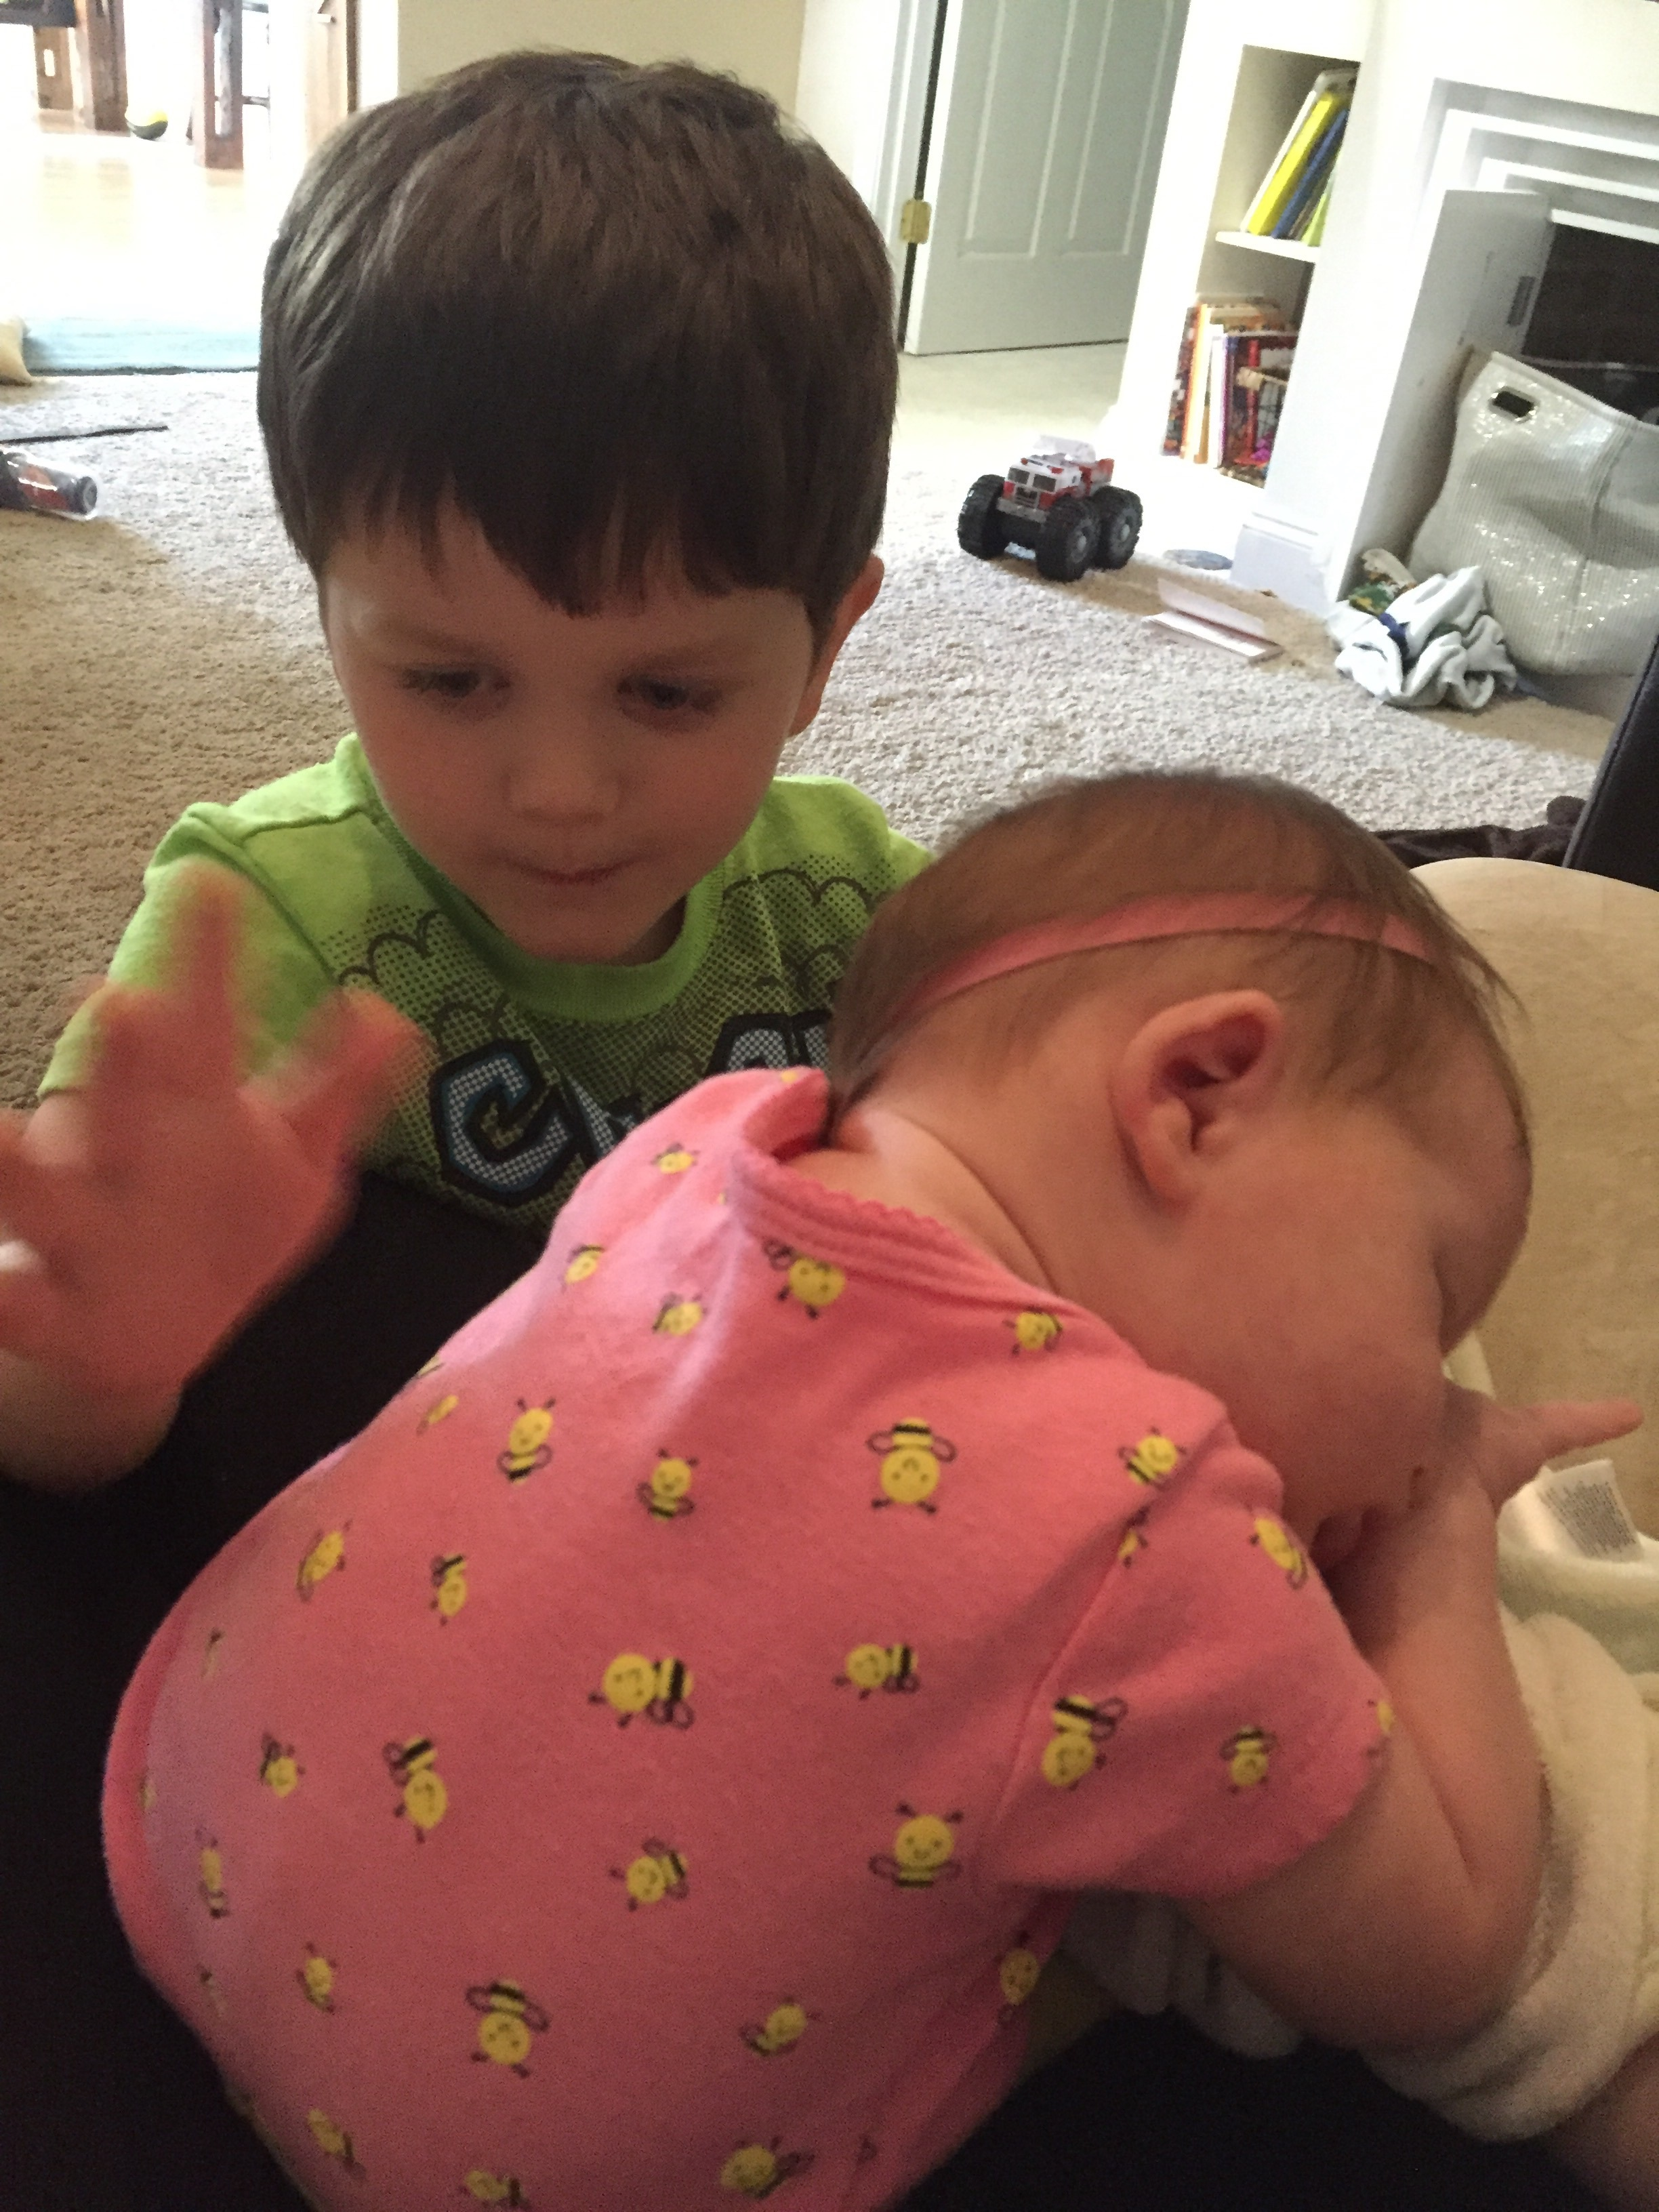 Big brother provides burping help